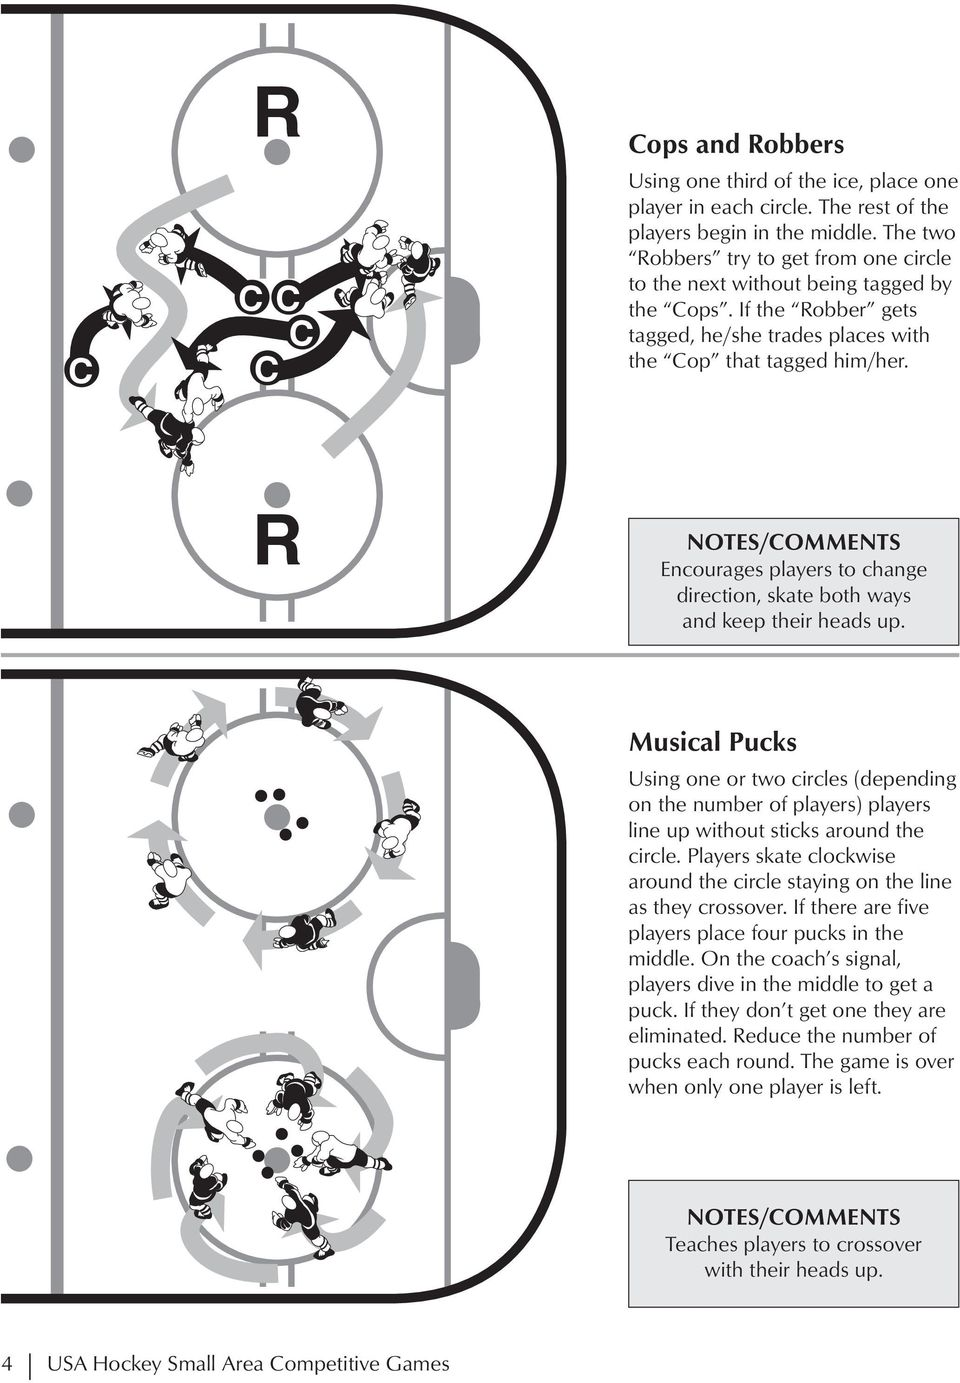 R Encourages players to change direction, skate both ways and keep their heads up.